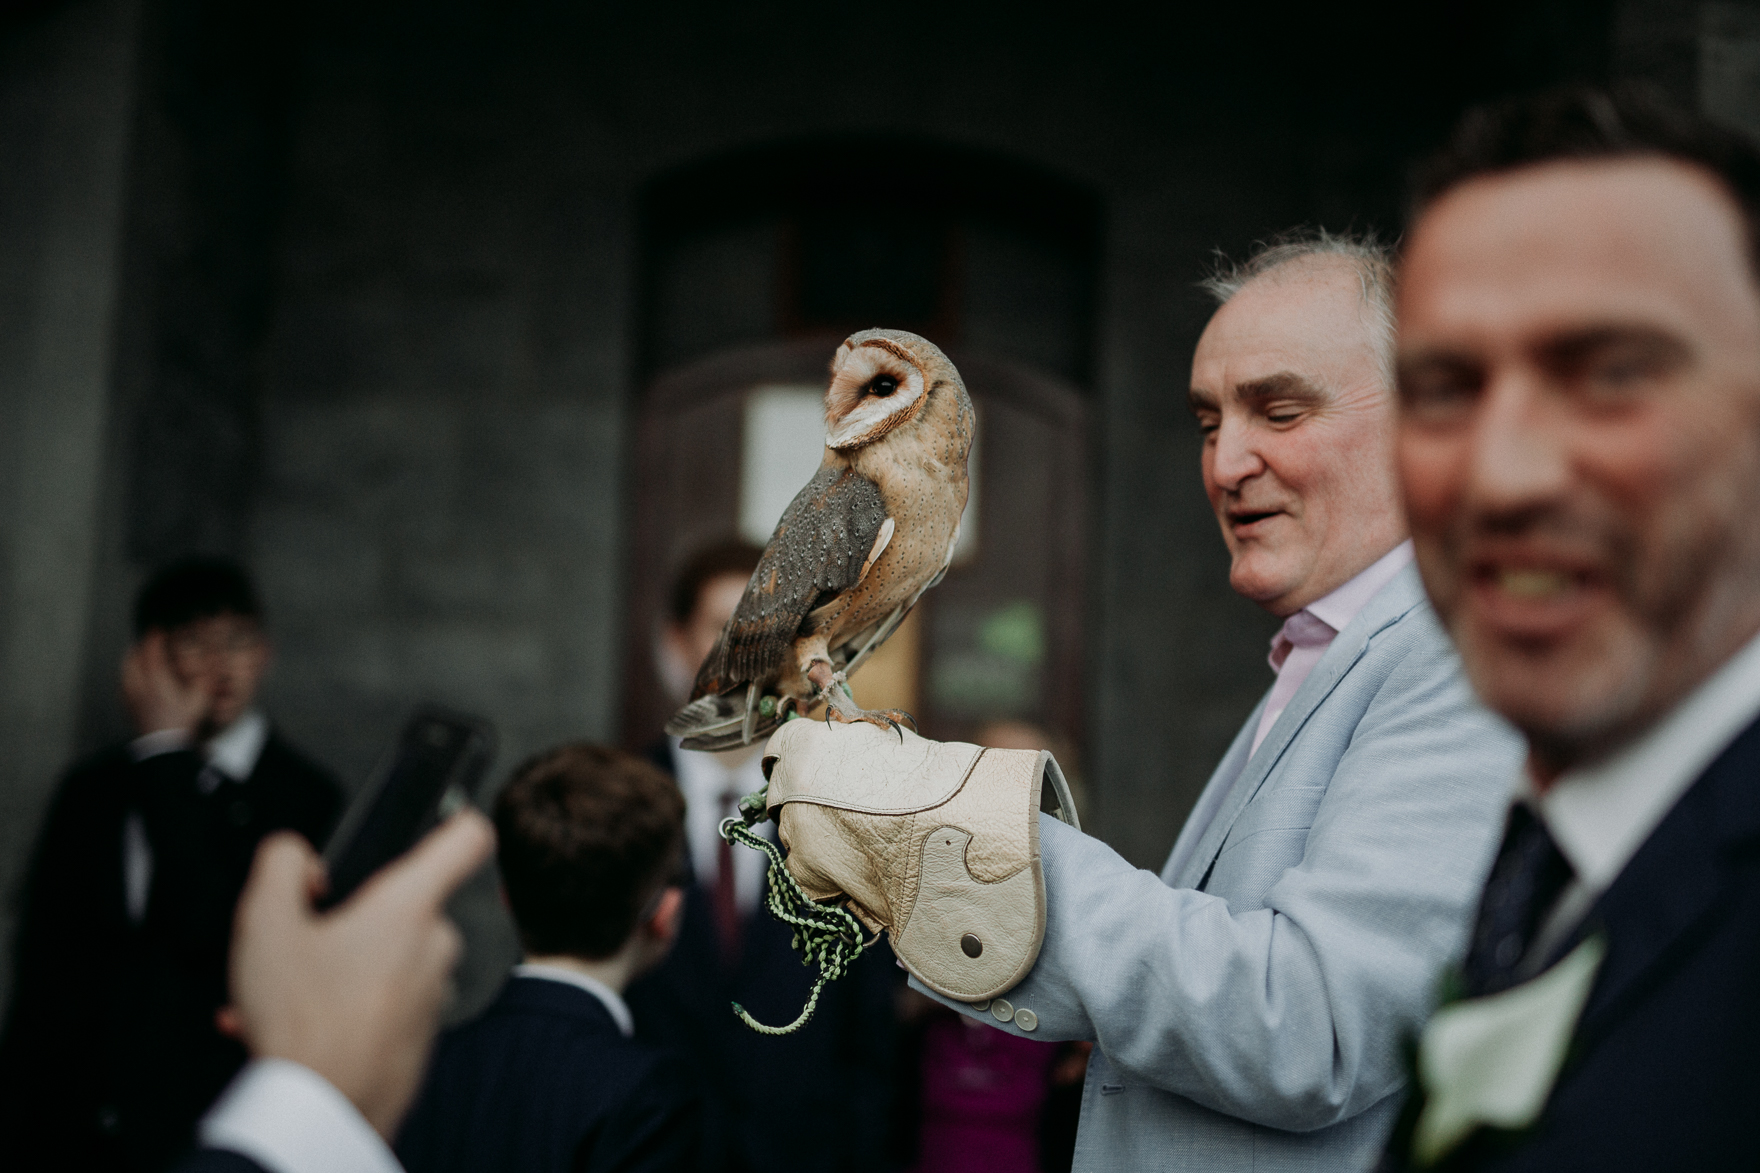 Roland Romanelli standing in front of an owl